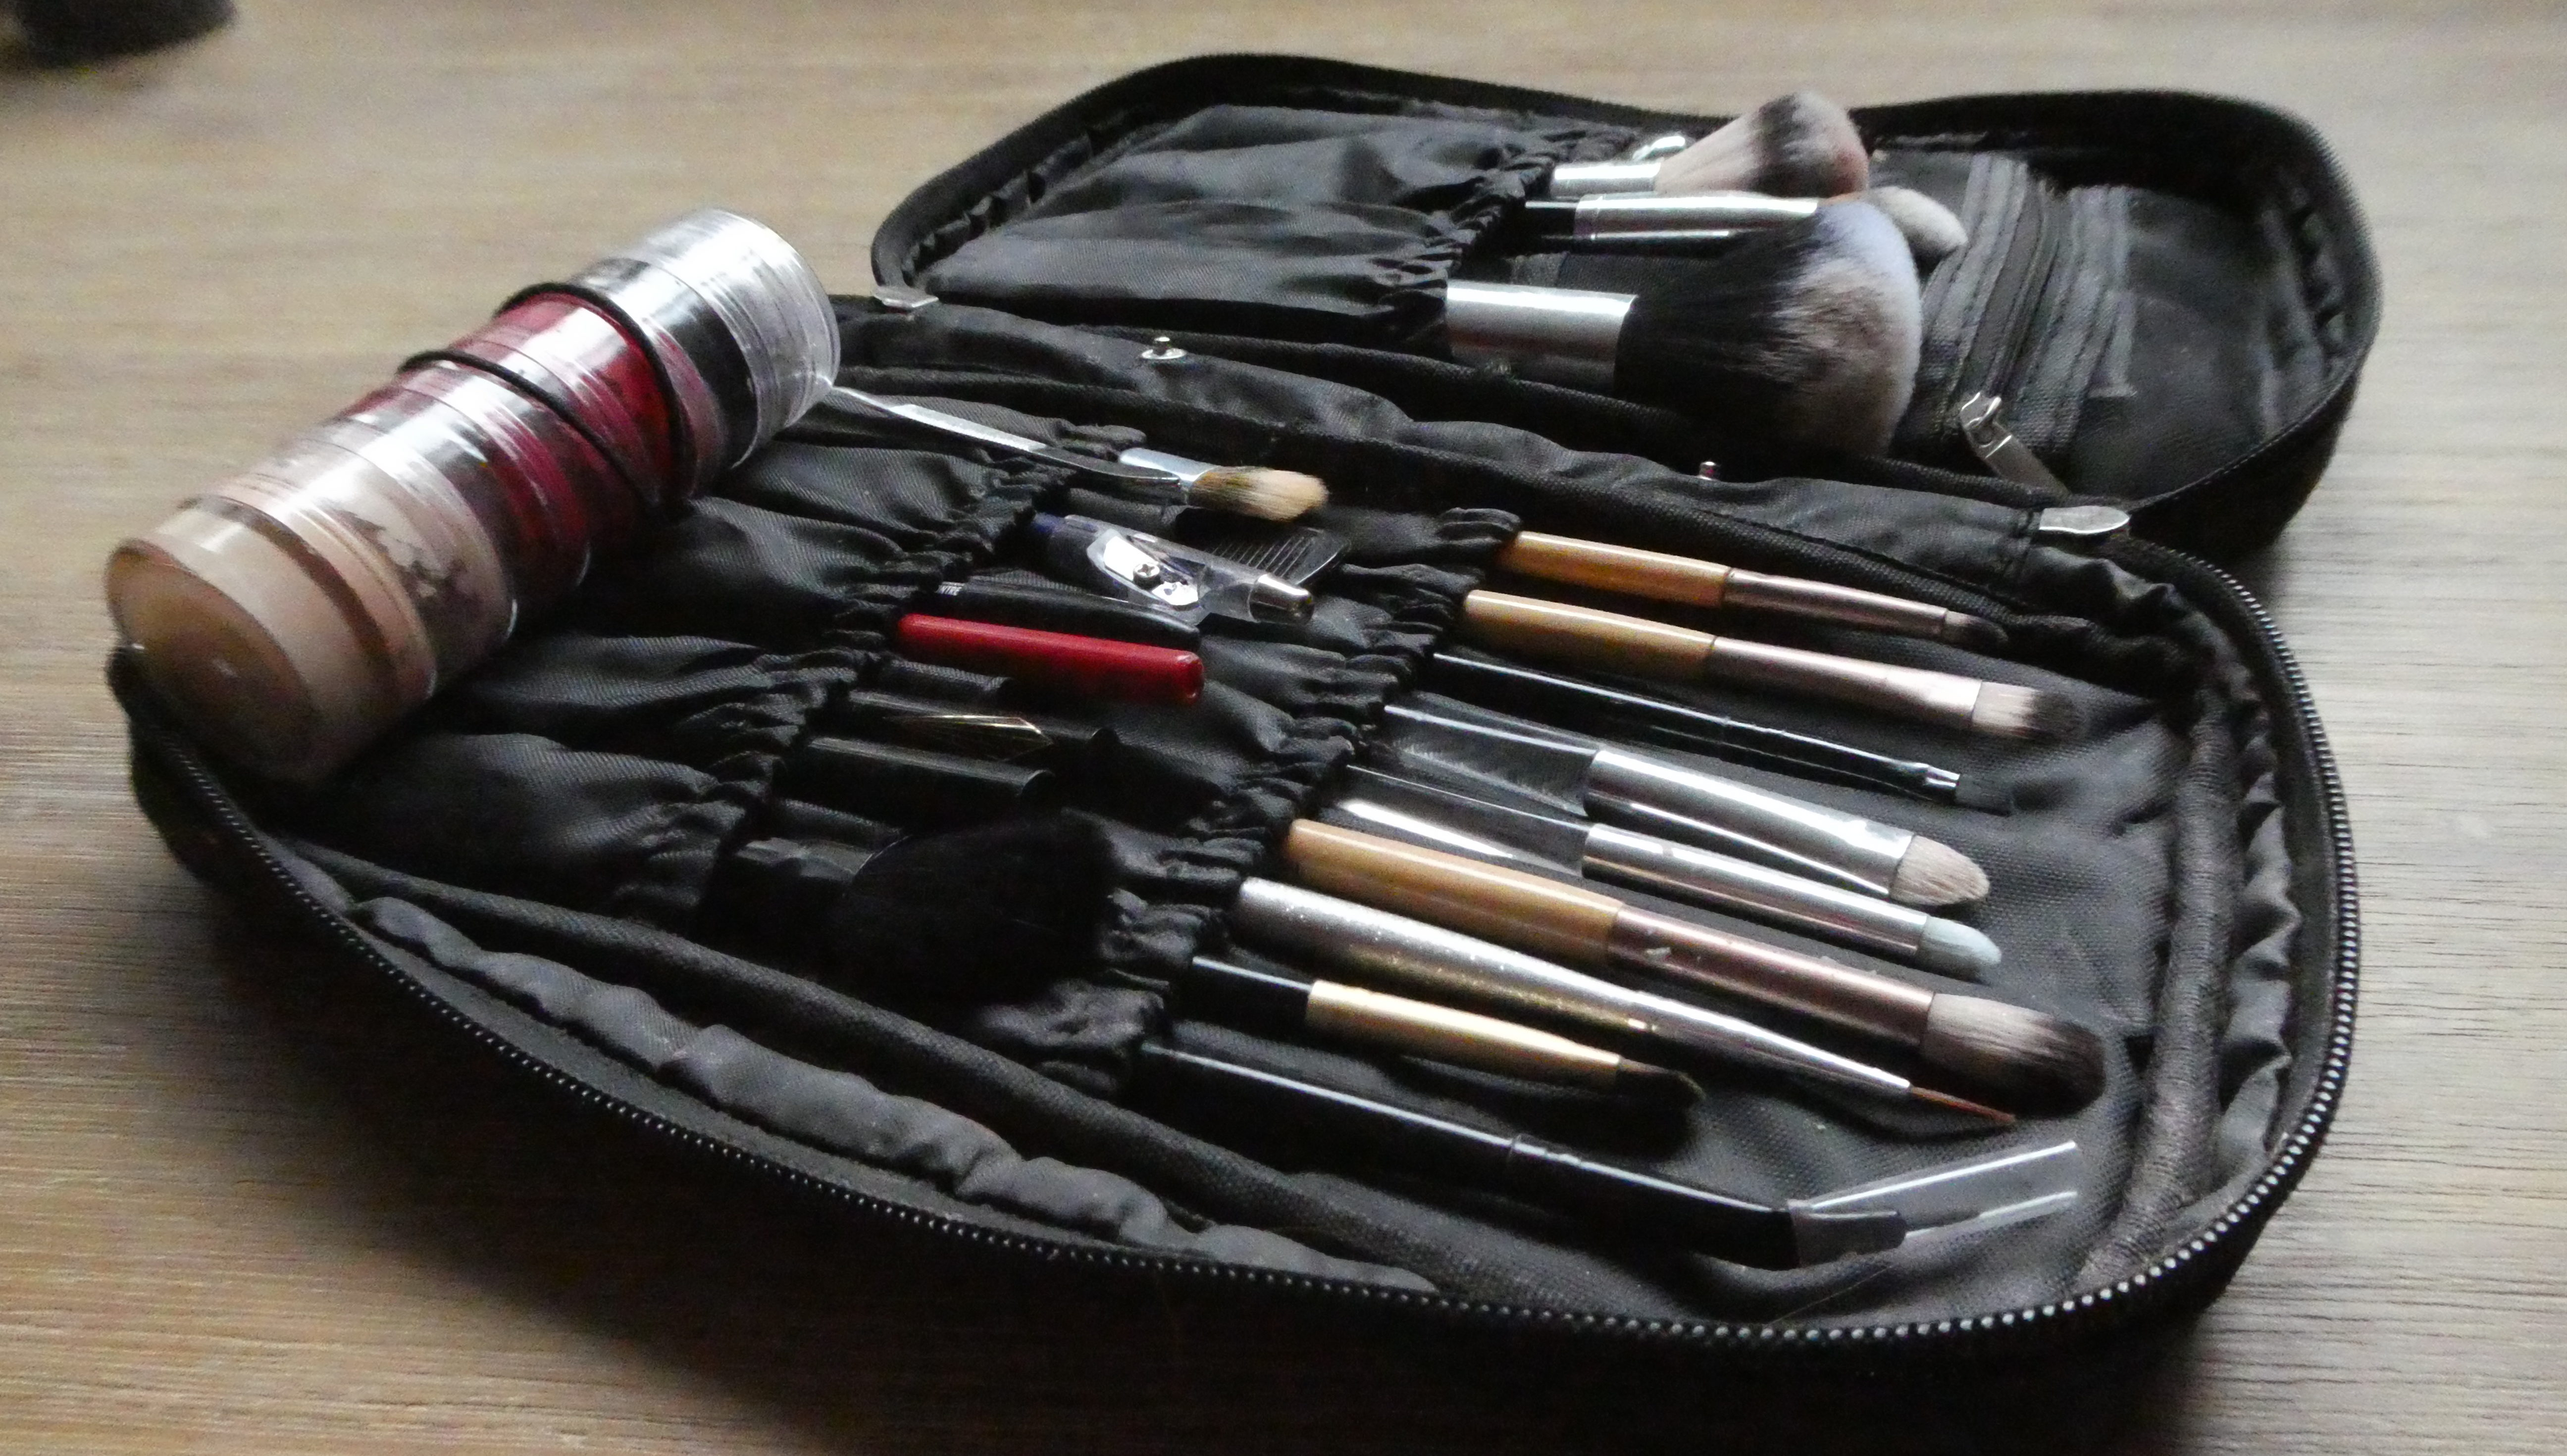 The Minimalist Makeup Kit of a Professional Entertainer